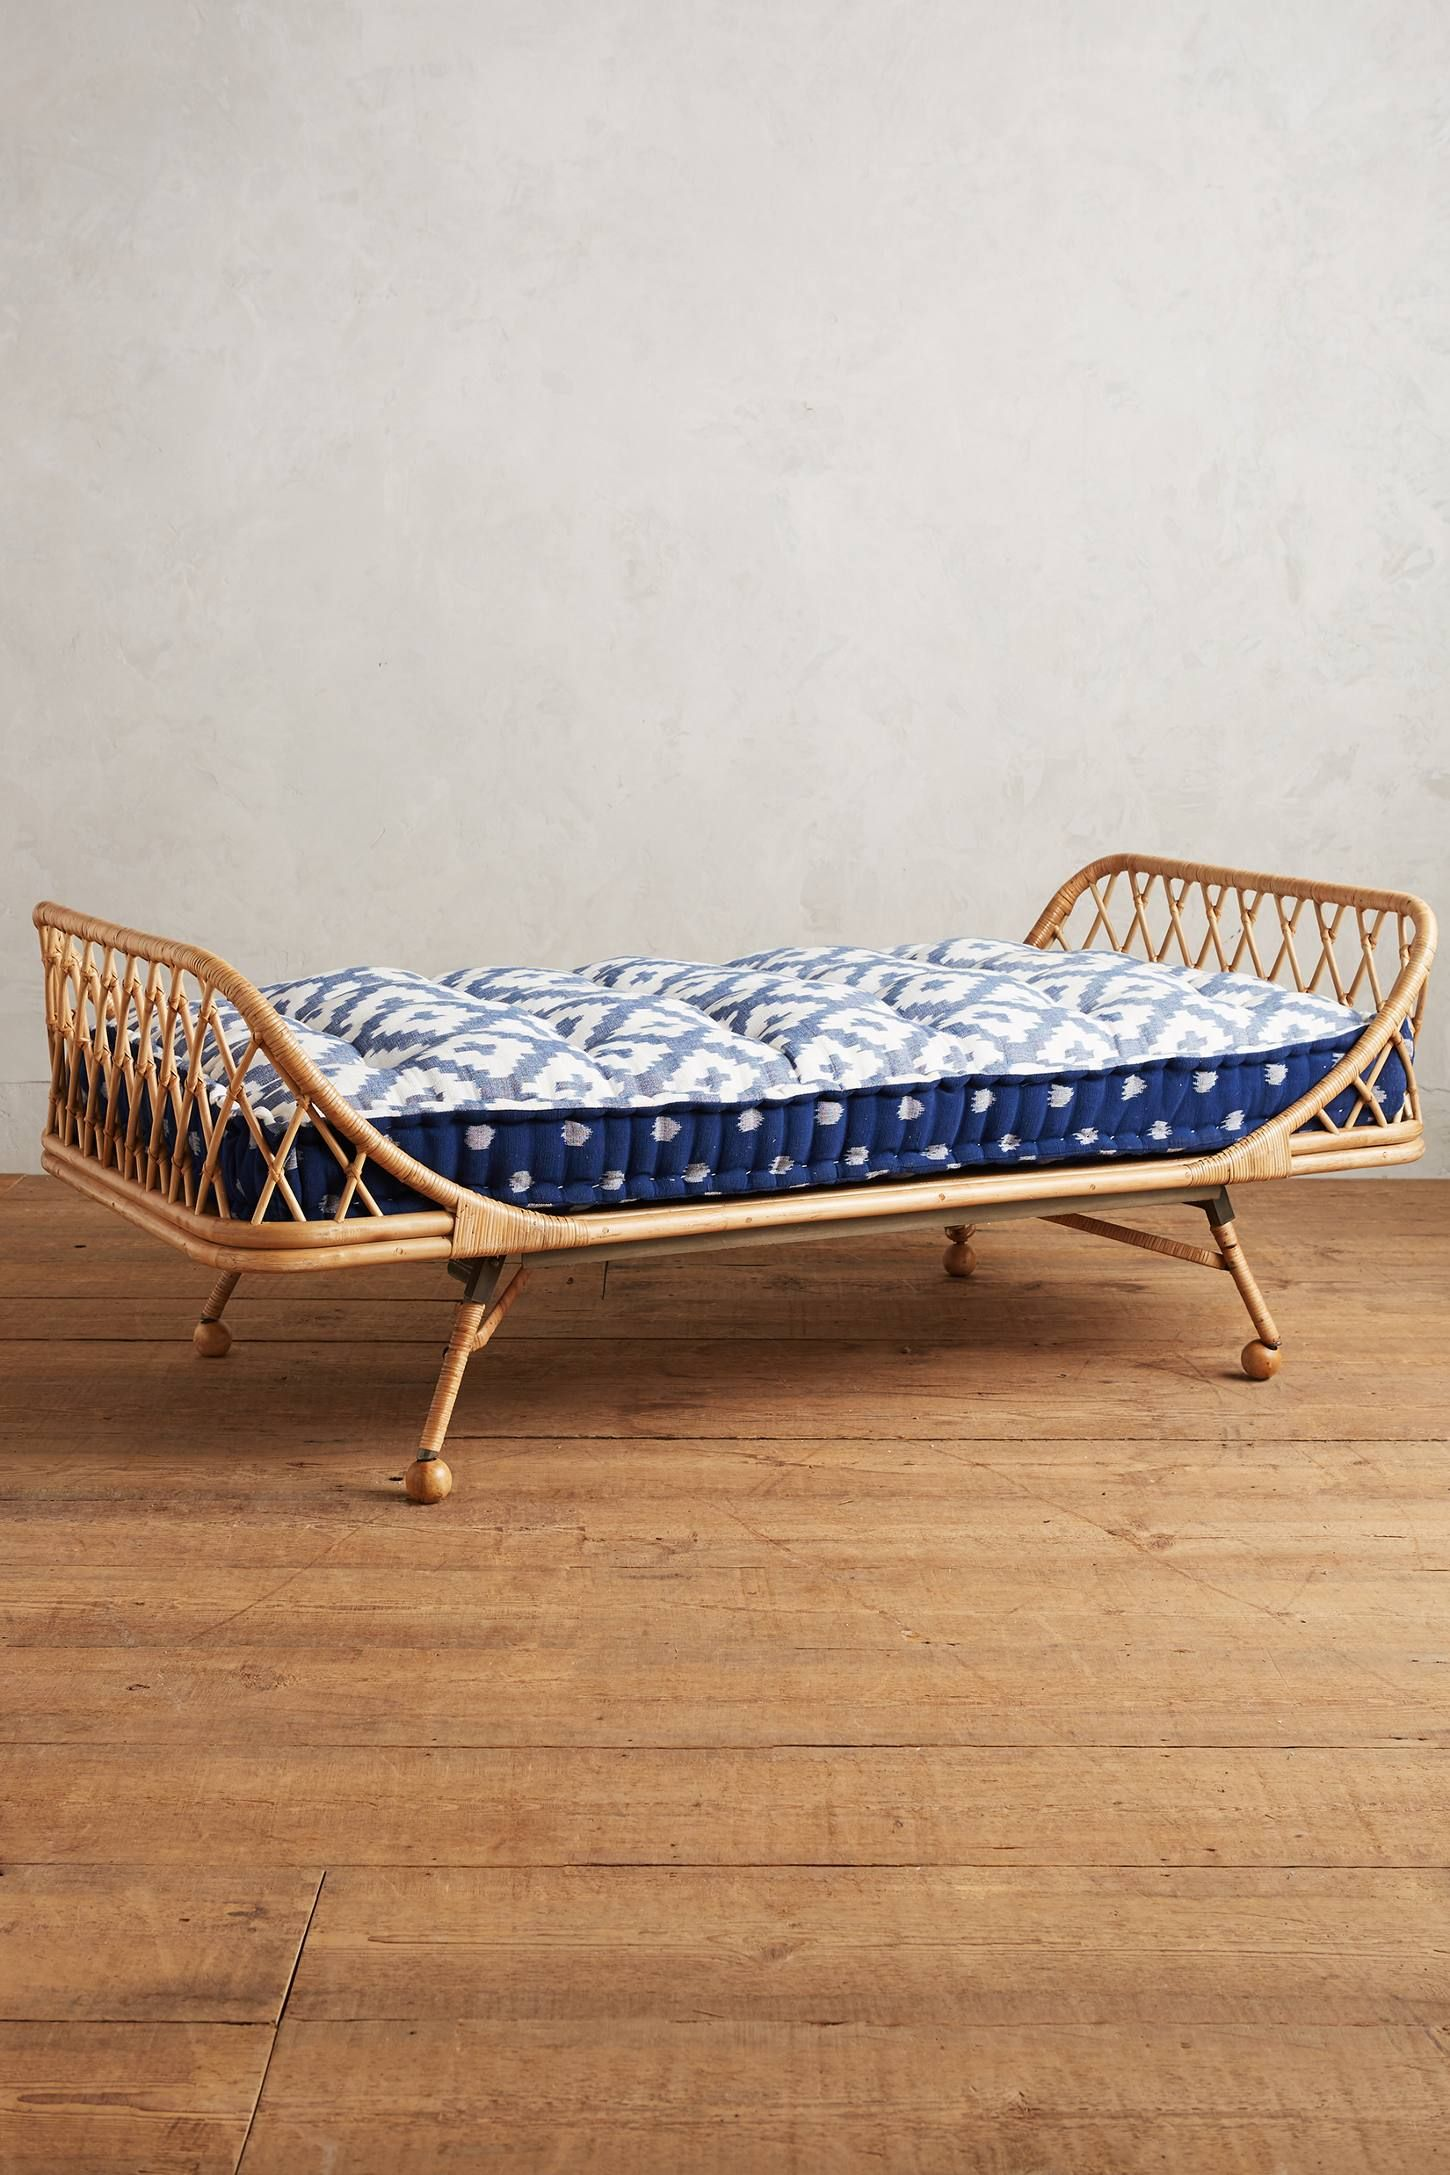 Shop The Pari Rattan Daybed And More Anthropologie At Anthropologie Today Read Customer Reviews Discover Product Detail Rattan Daybed Daybed Design Furniture